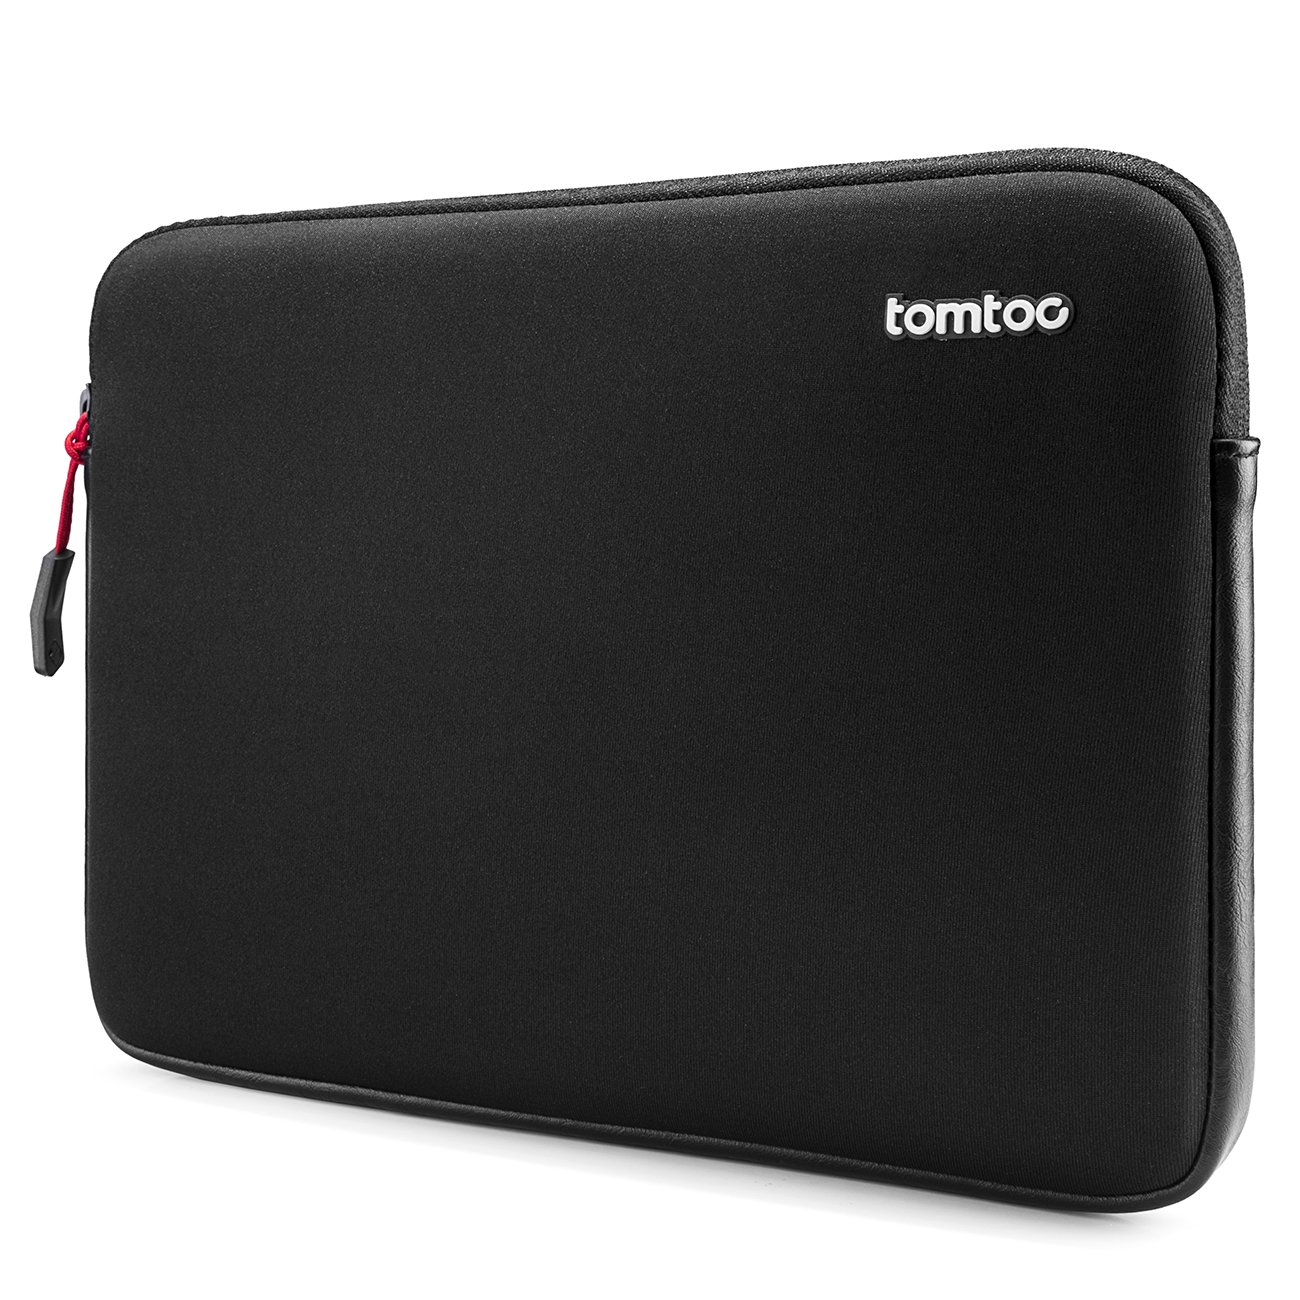 tomtoc 10.5 Inch Protective Tablet Sleeve Bag Compatible with 10.5'' iPad Pro, 2018 Surface Go, 9.7'' iPad Air 2, Samsung Galaxy Tab A 10.1'', Acer Chromebook Tab 10, Fit Apple Smart Keyboard